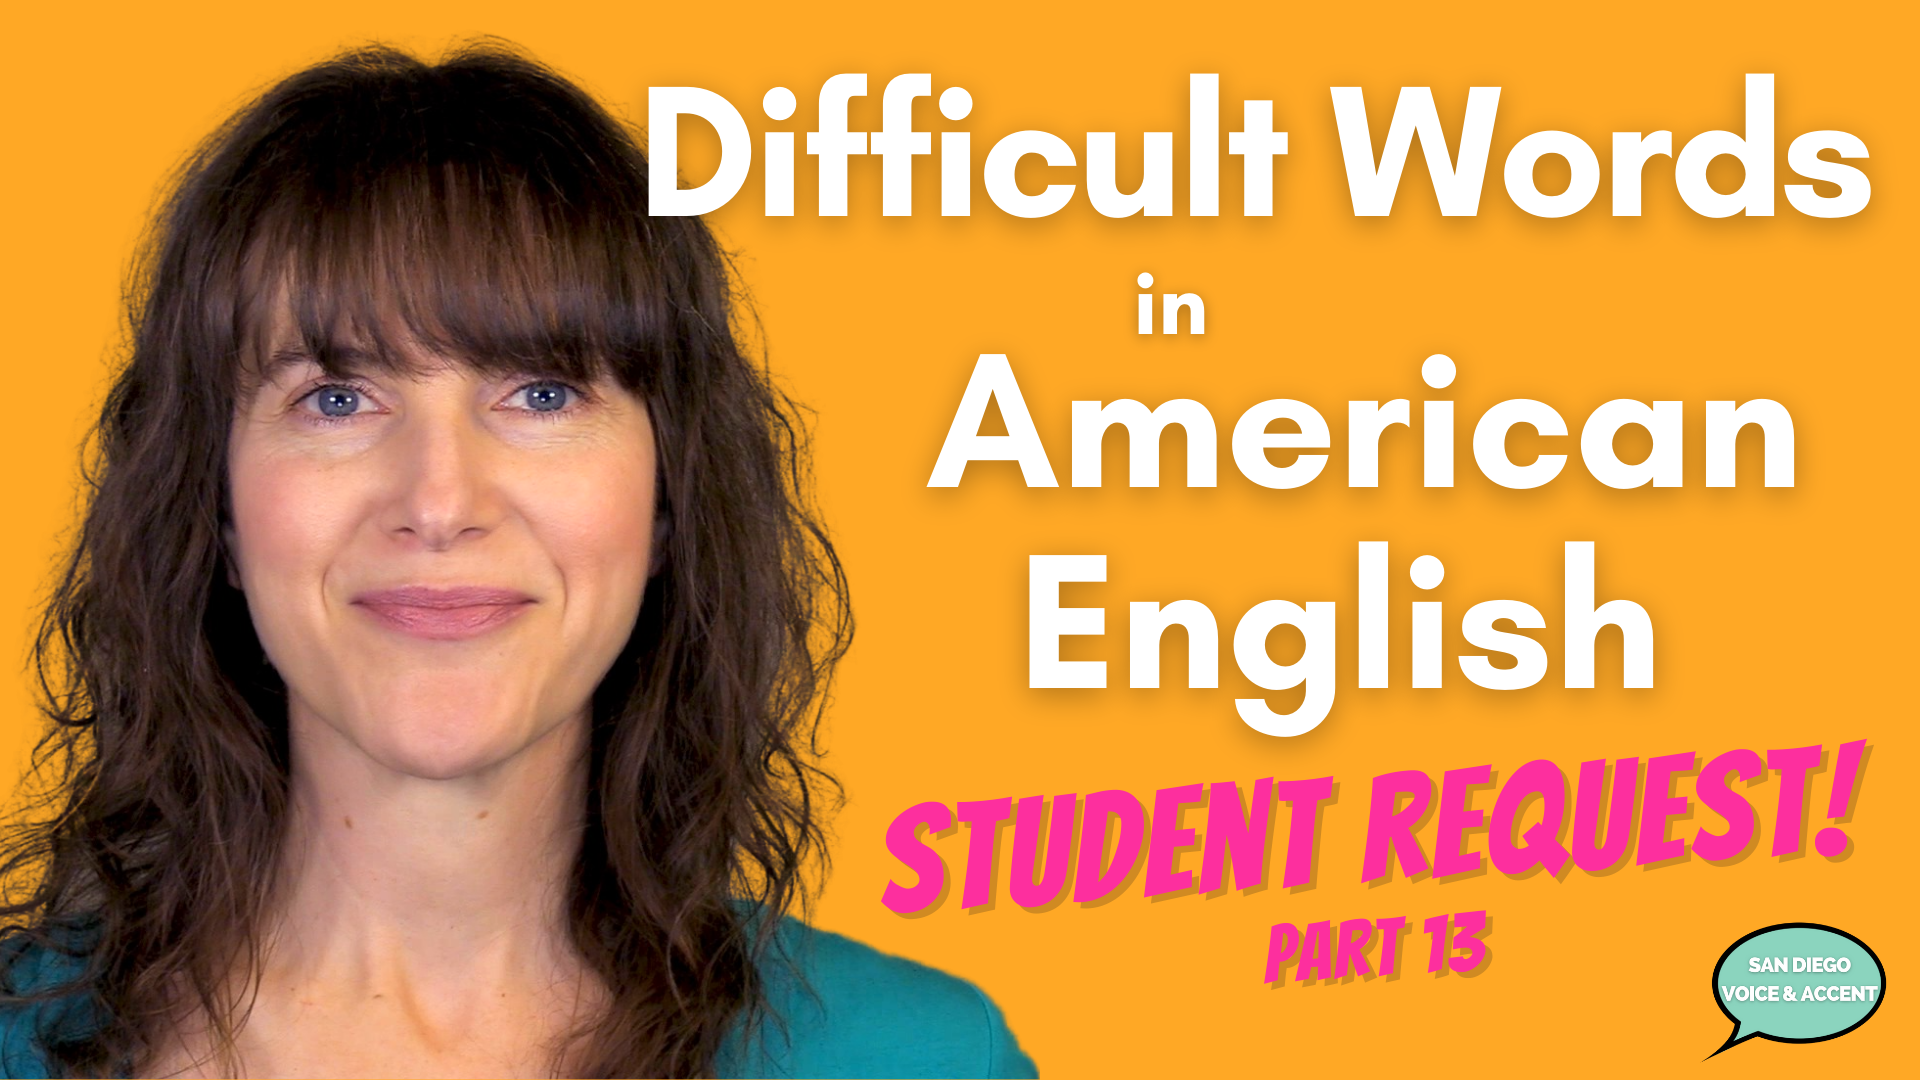 How to Pronounce Difficult Words in American English